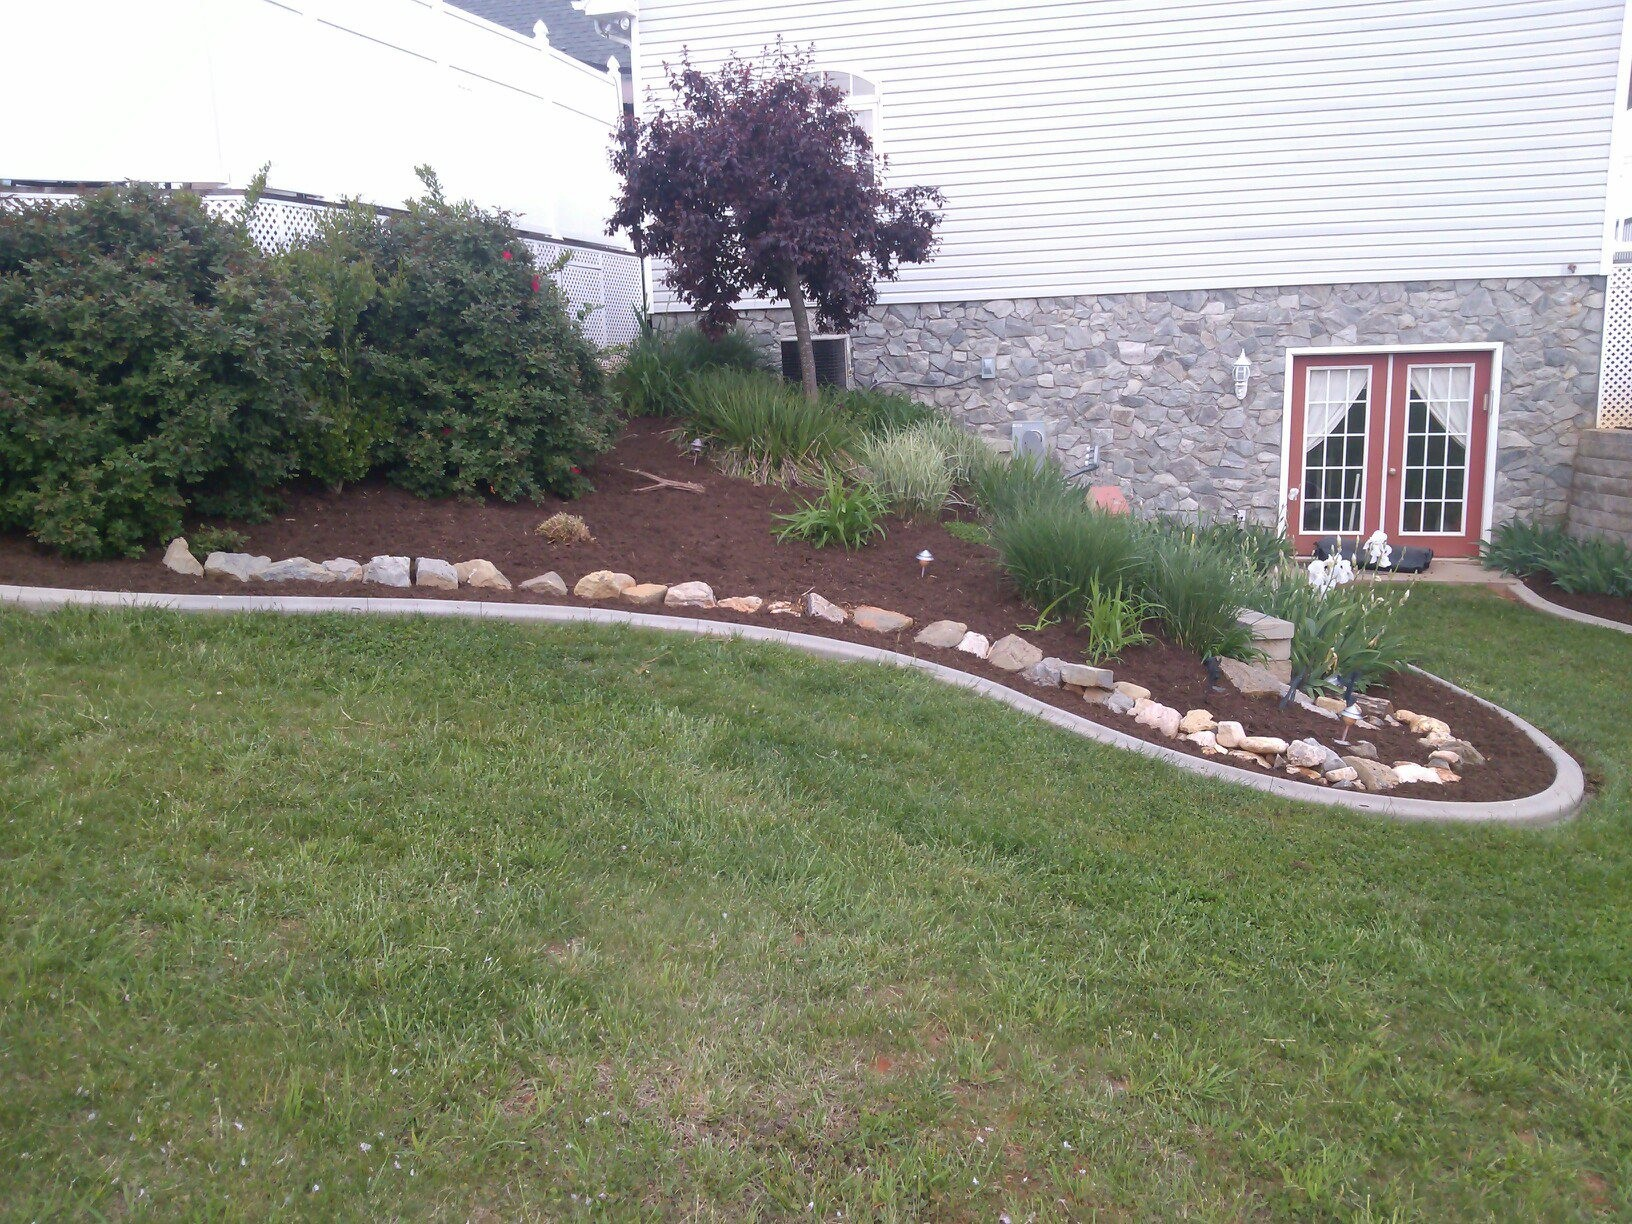 r-and-d-residential-landscaping-joplin-mo-home-lawn